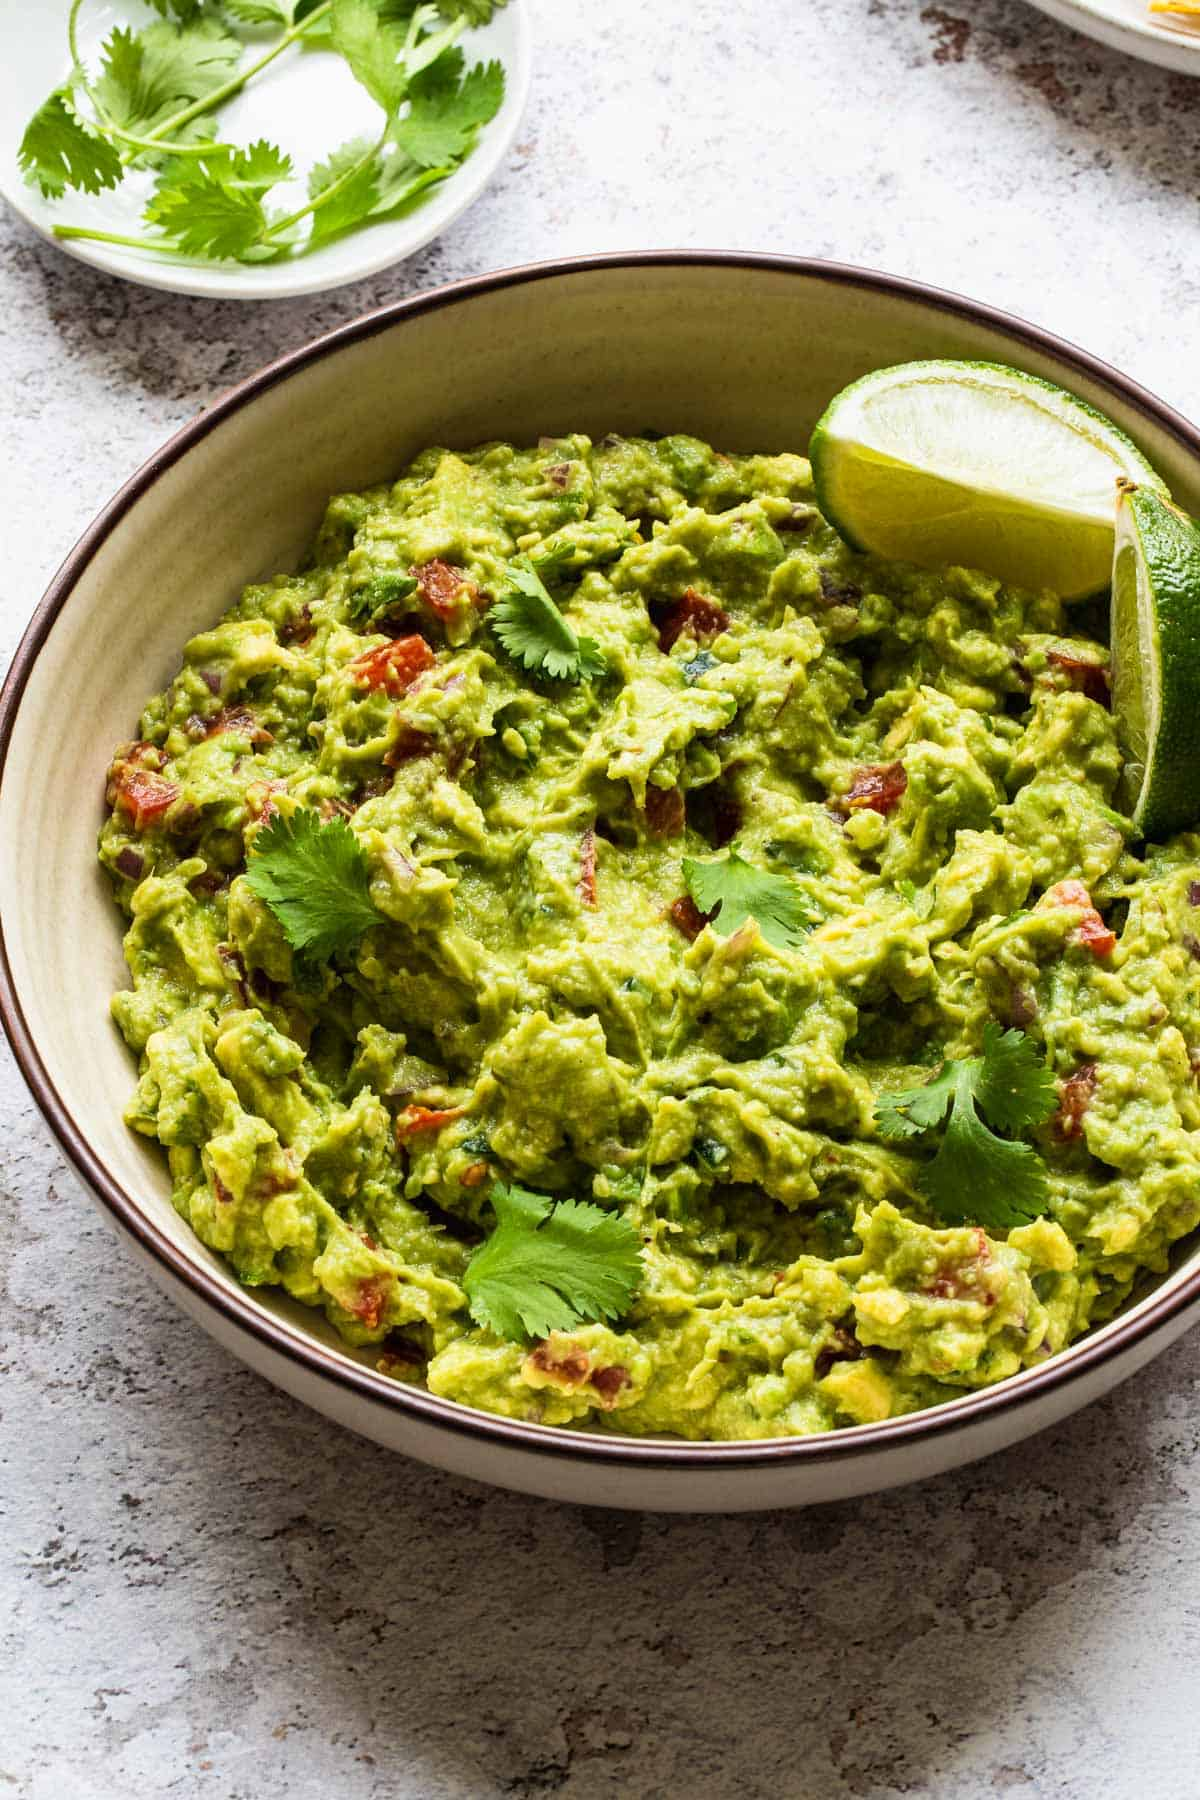 close up view of bowl of guacamole with cilantro leaves in background